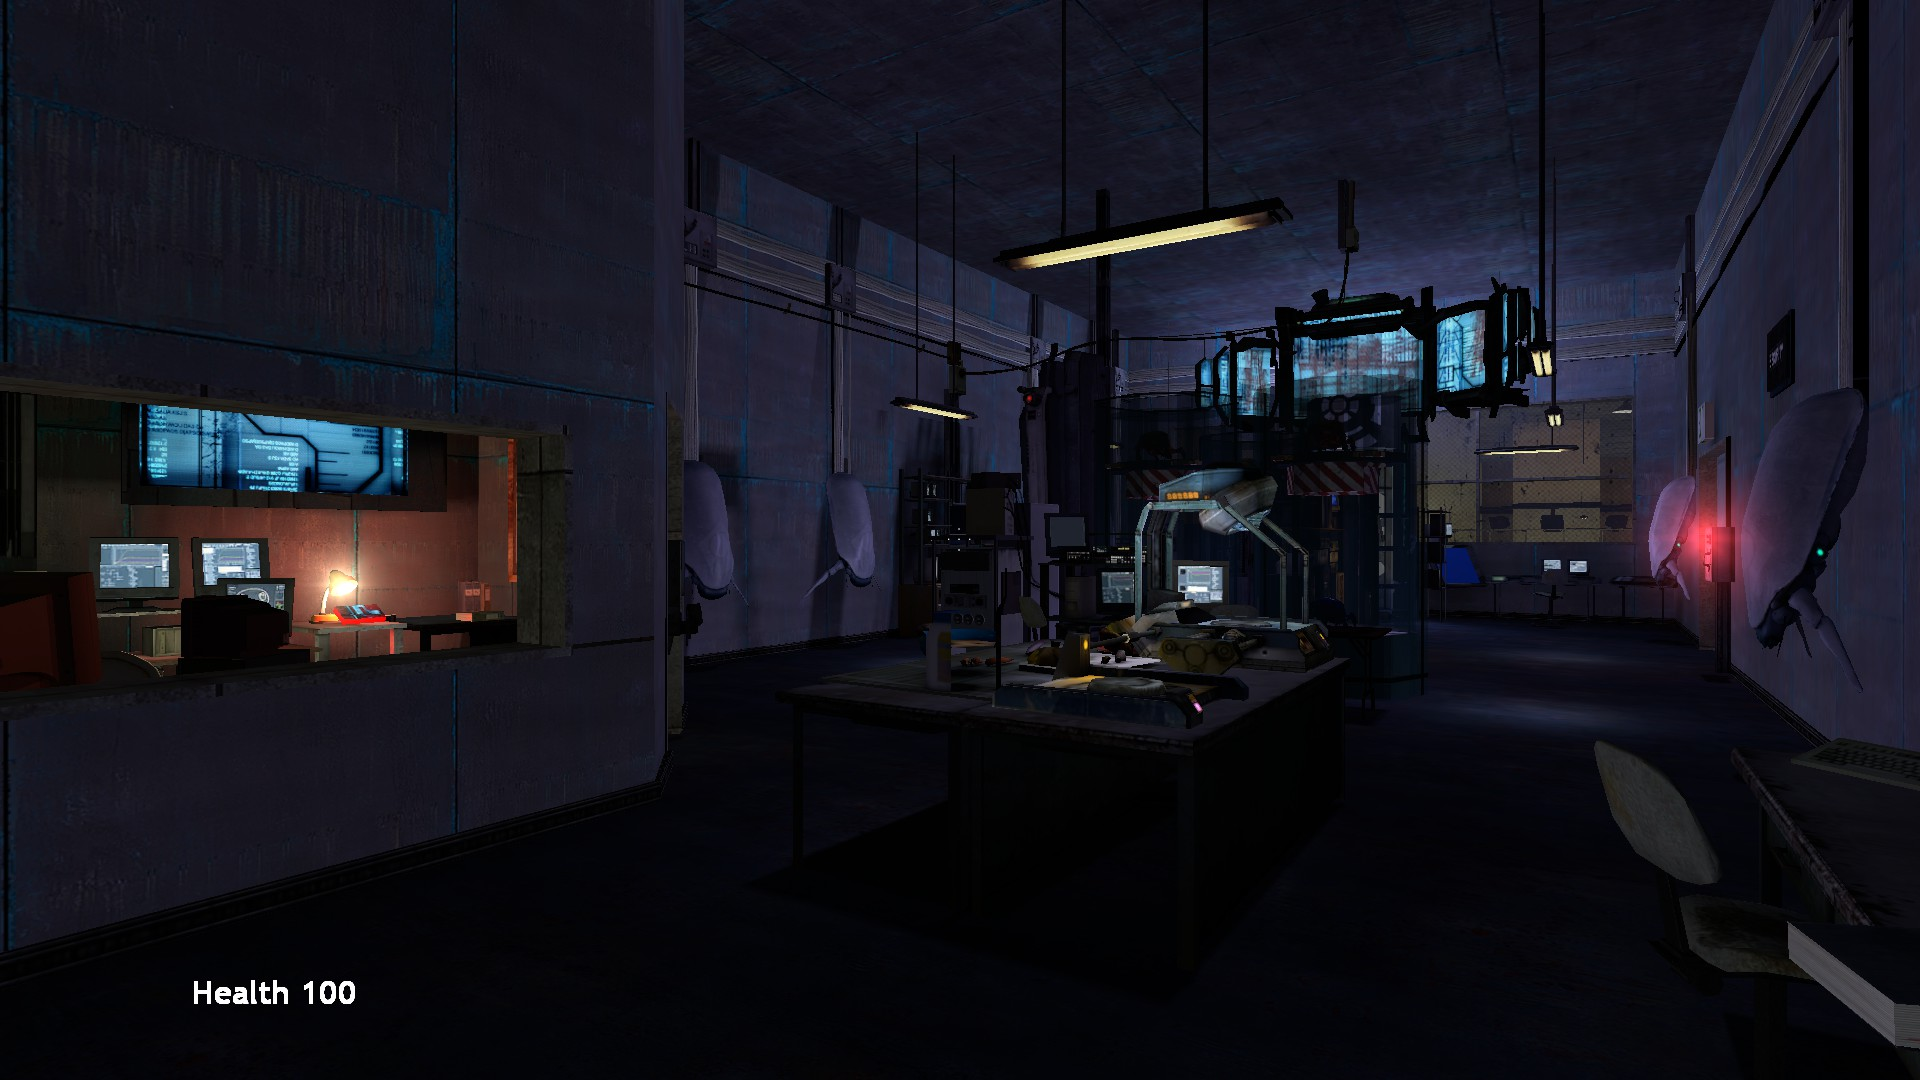 Area 2 - The laboratory